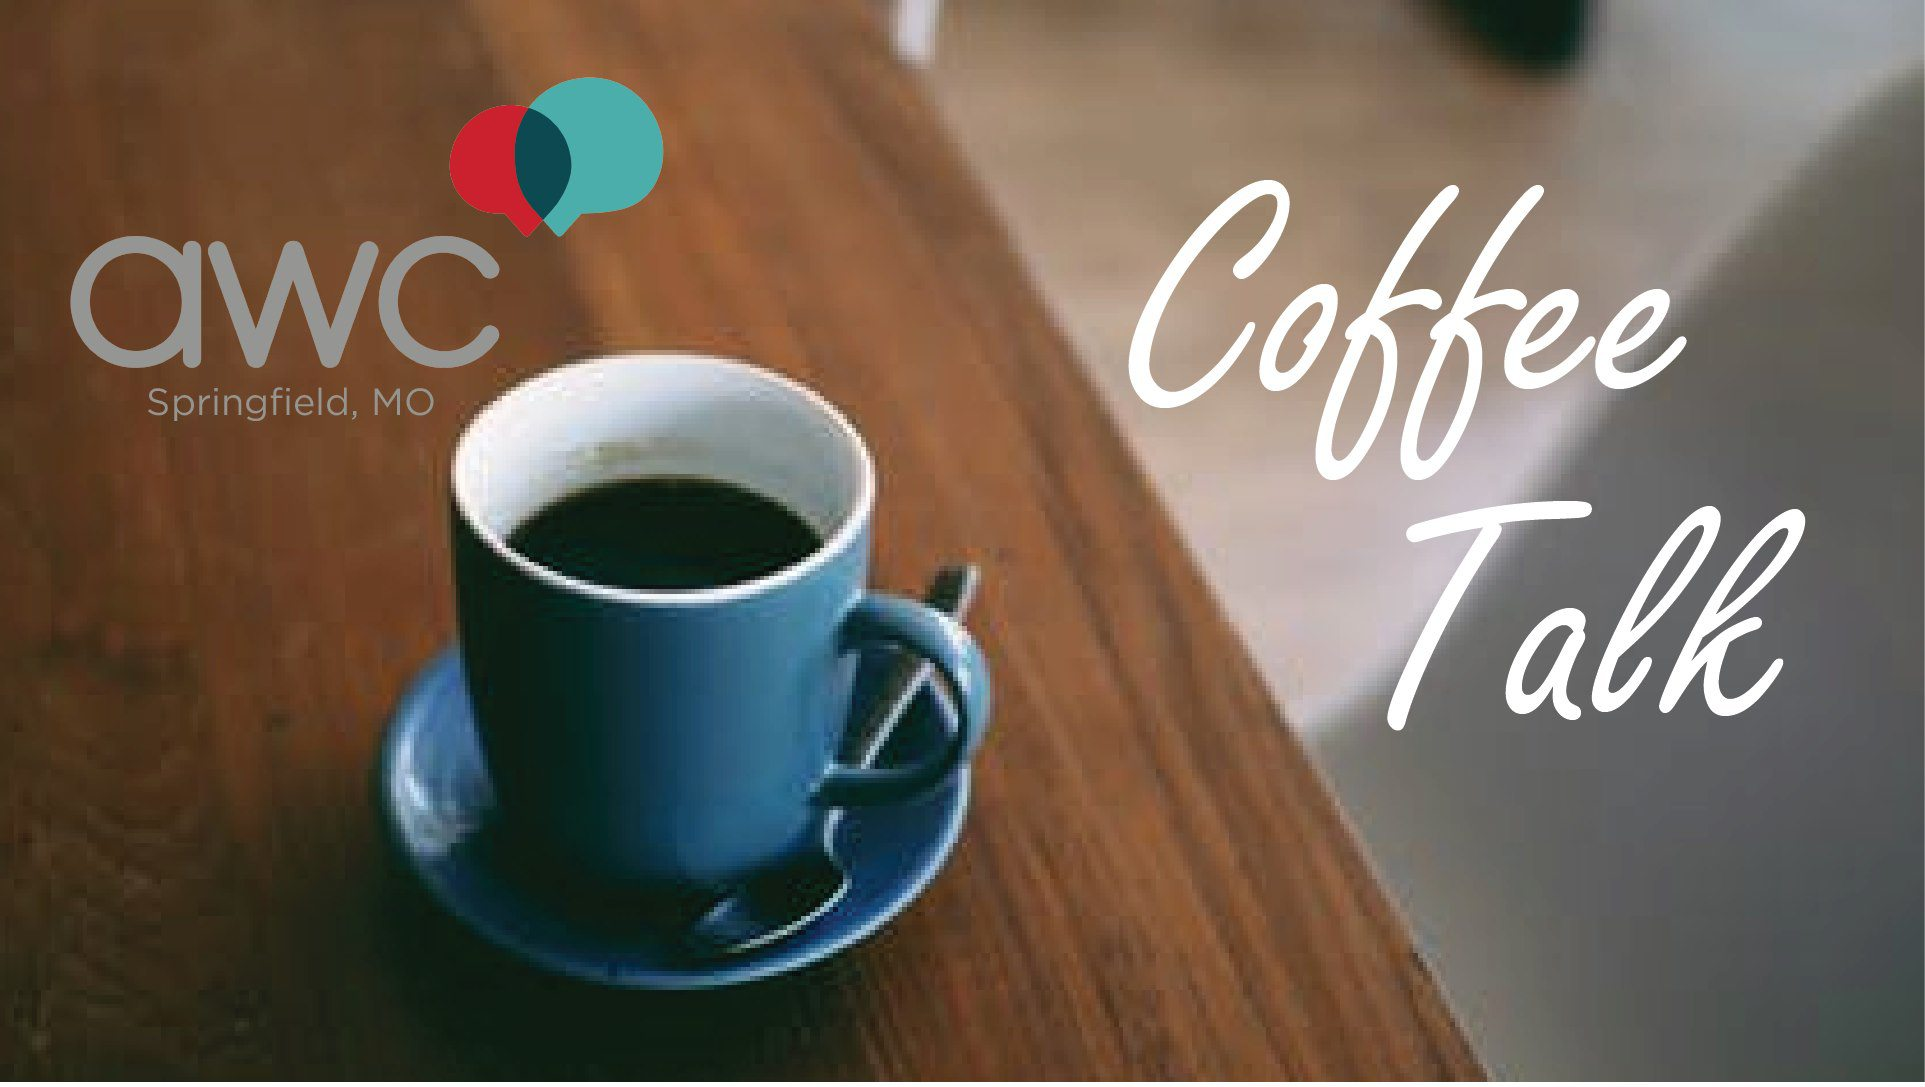 Coffee & Networking in Springfield, MO